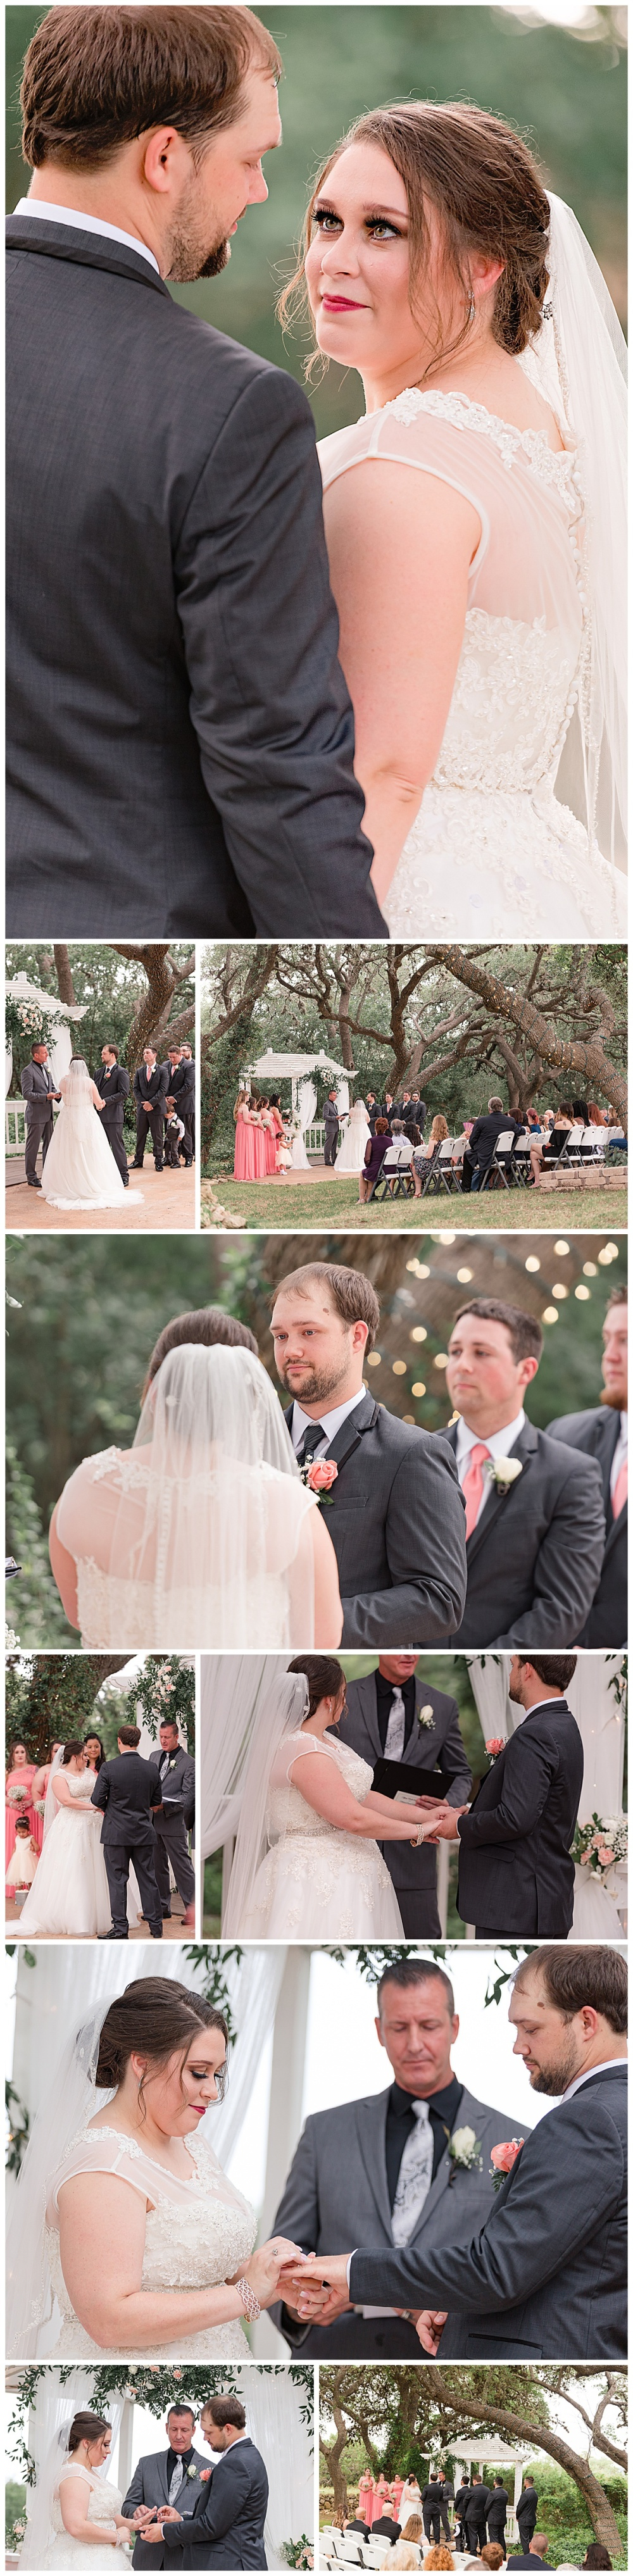 Michael-Tiffany-Wedding-New-Braunfels-Texas-Canyon-Lake-Cabins-and-Cottages-Carly-Barton-Photography_0023.jpg